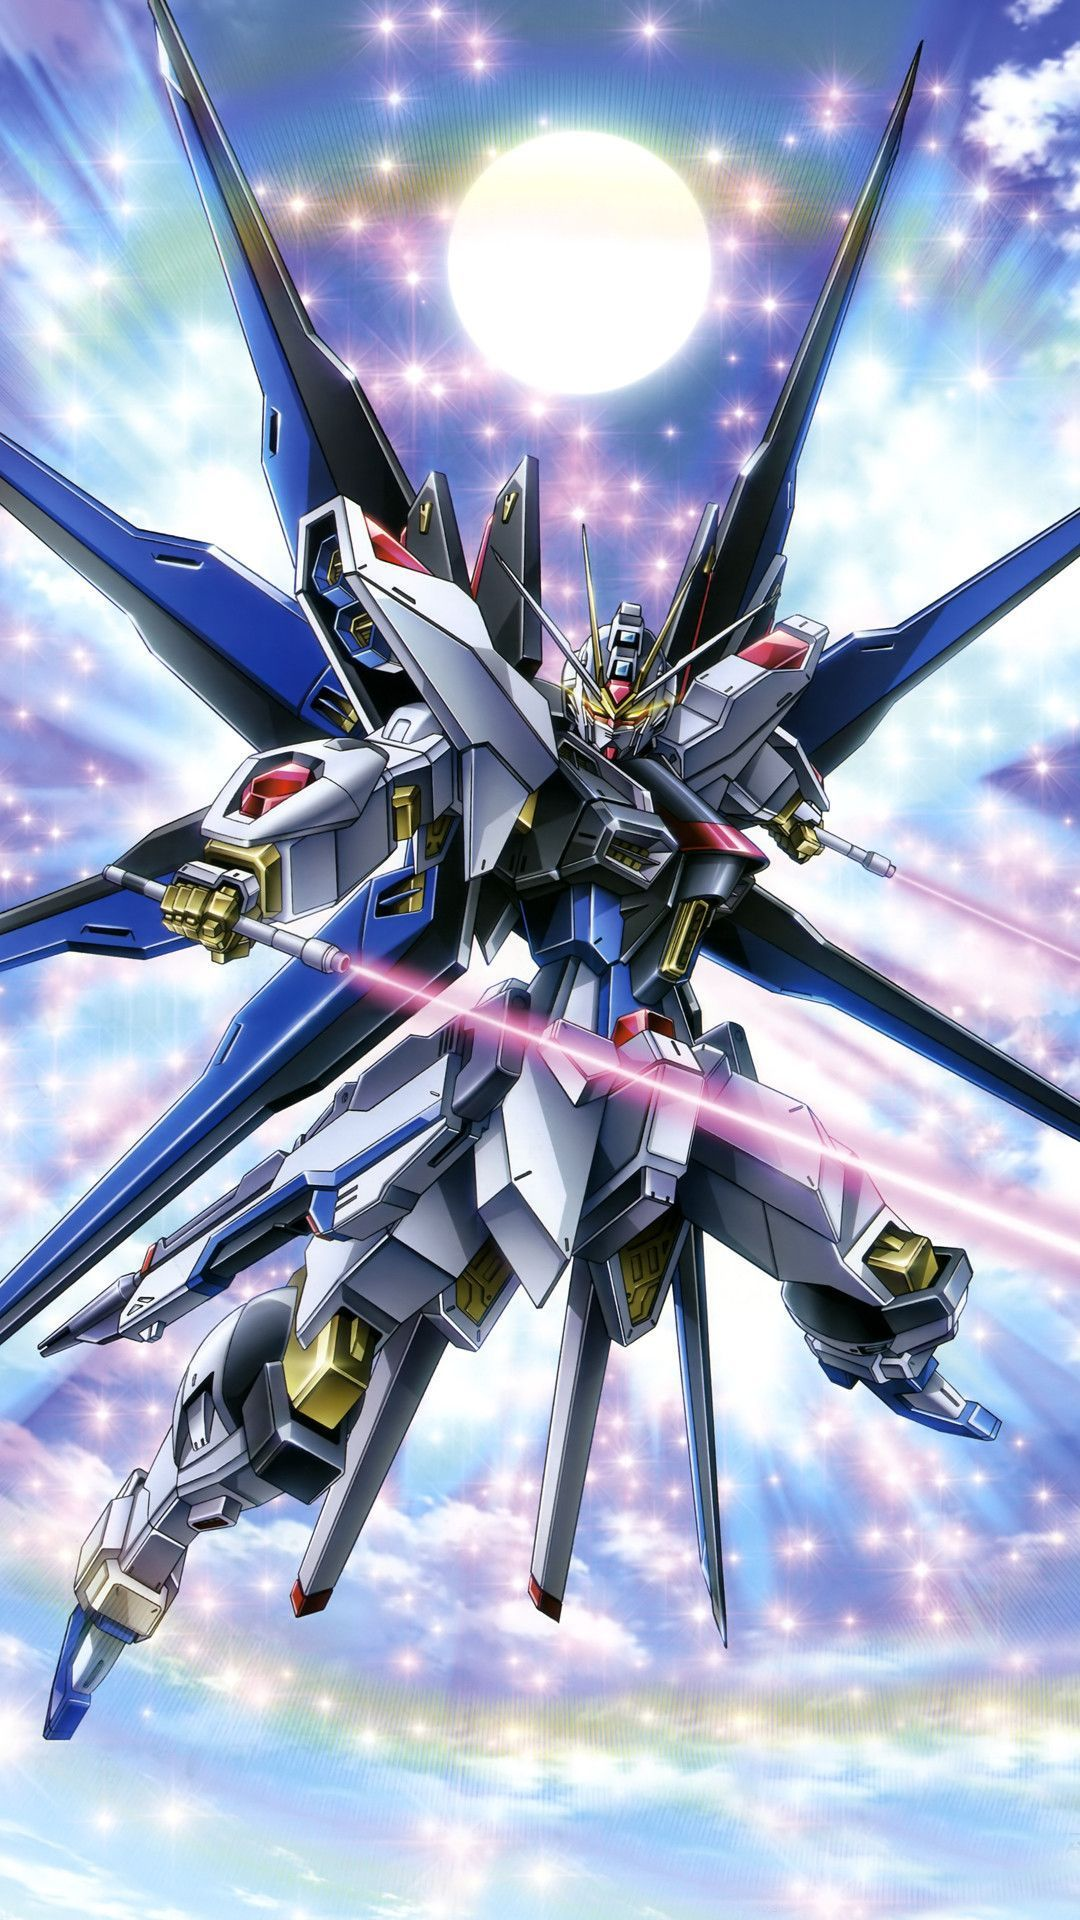 Gundam Android Iphone Desktop Hd Backgrounds Wallpapers 1080p 4k 120565 Hdwallpapers Androidwallpapers Gundam Wallpapers Gundam Seed Gundam Art